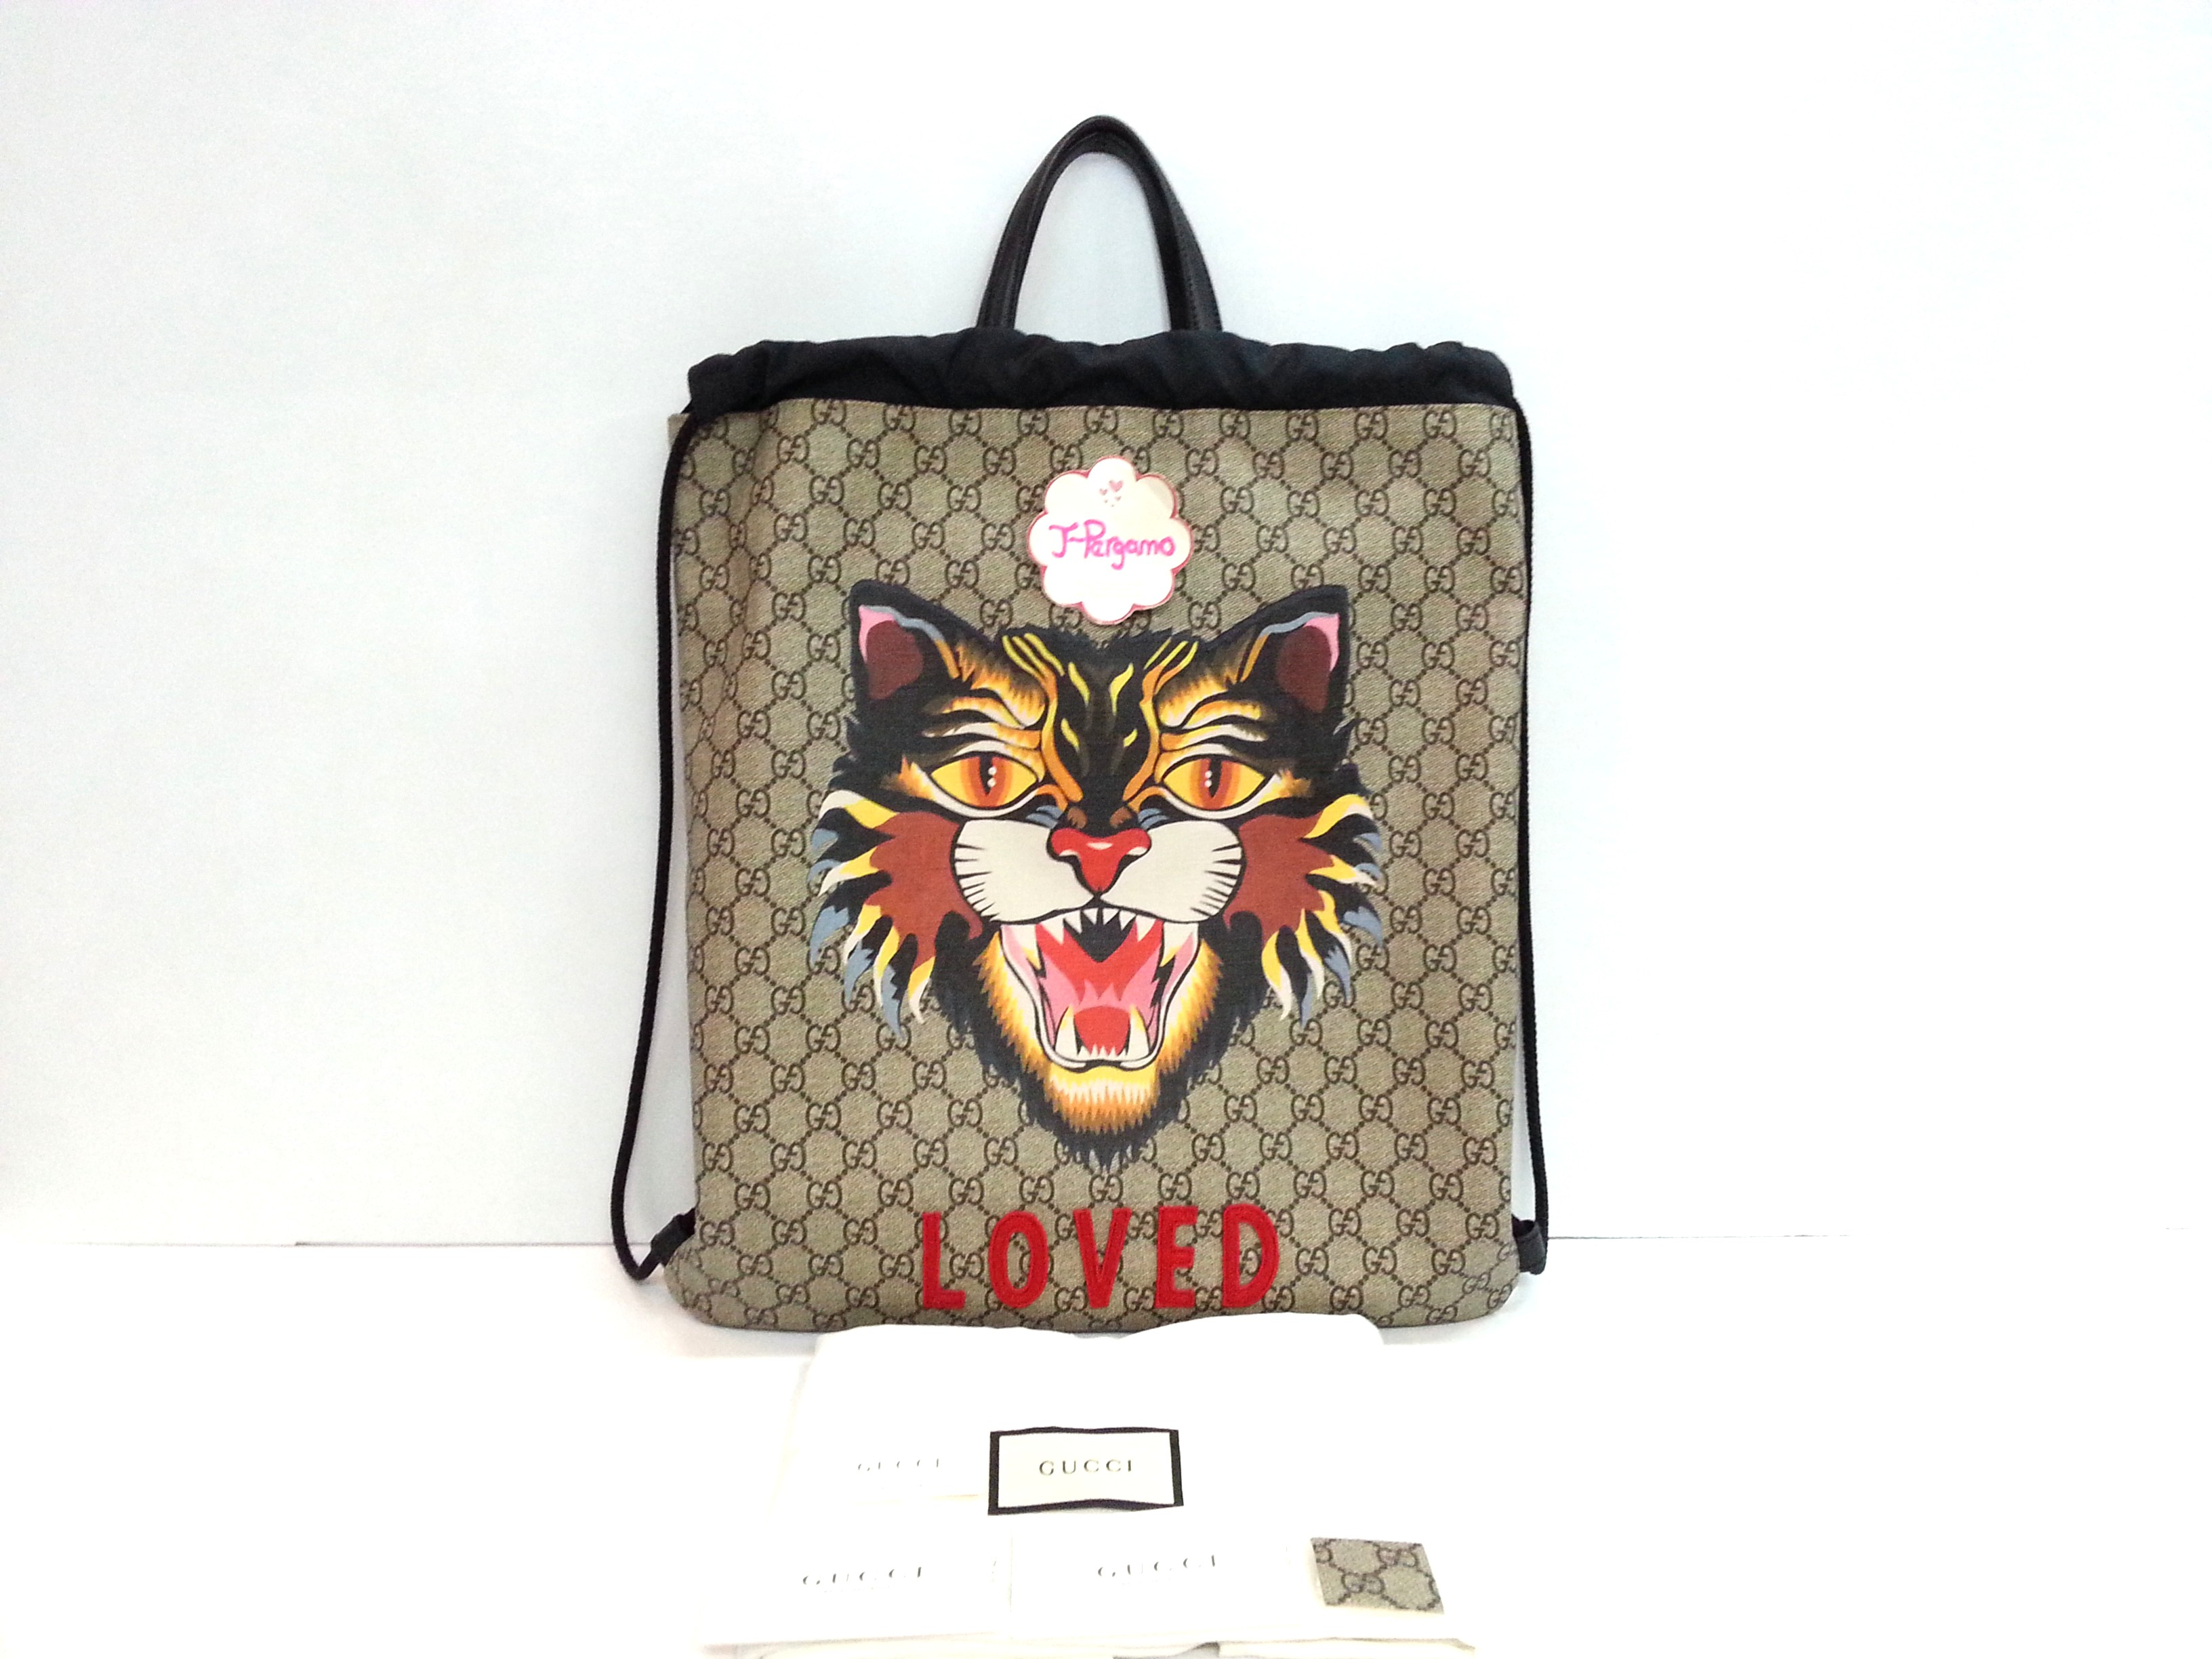 fda39756a334 Authentic Gucci Angry Cat Soft GG Supreme Drawstring Backpack {{Only For  Sale}} ** No Trade ** {{Fixed Price Non-Neg}} ** 定价 **, Luxury, Bags &  Wallets, ...